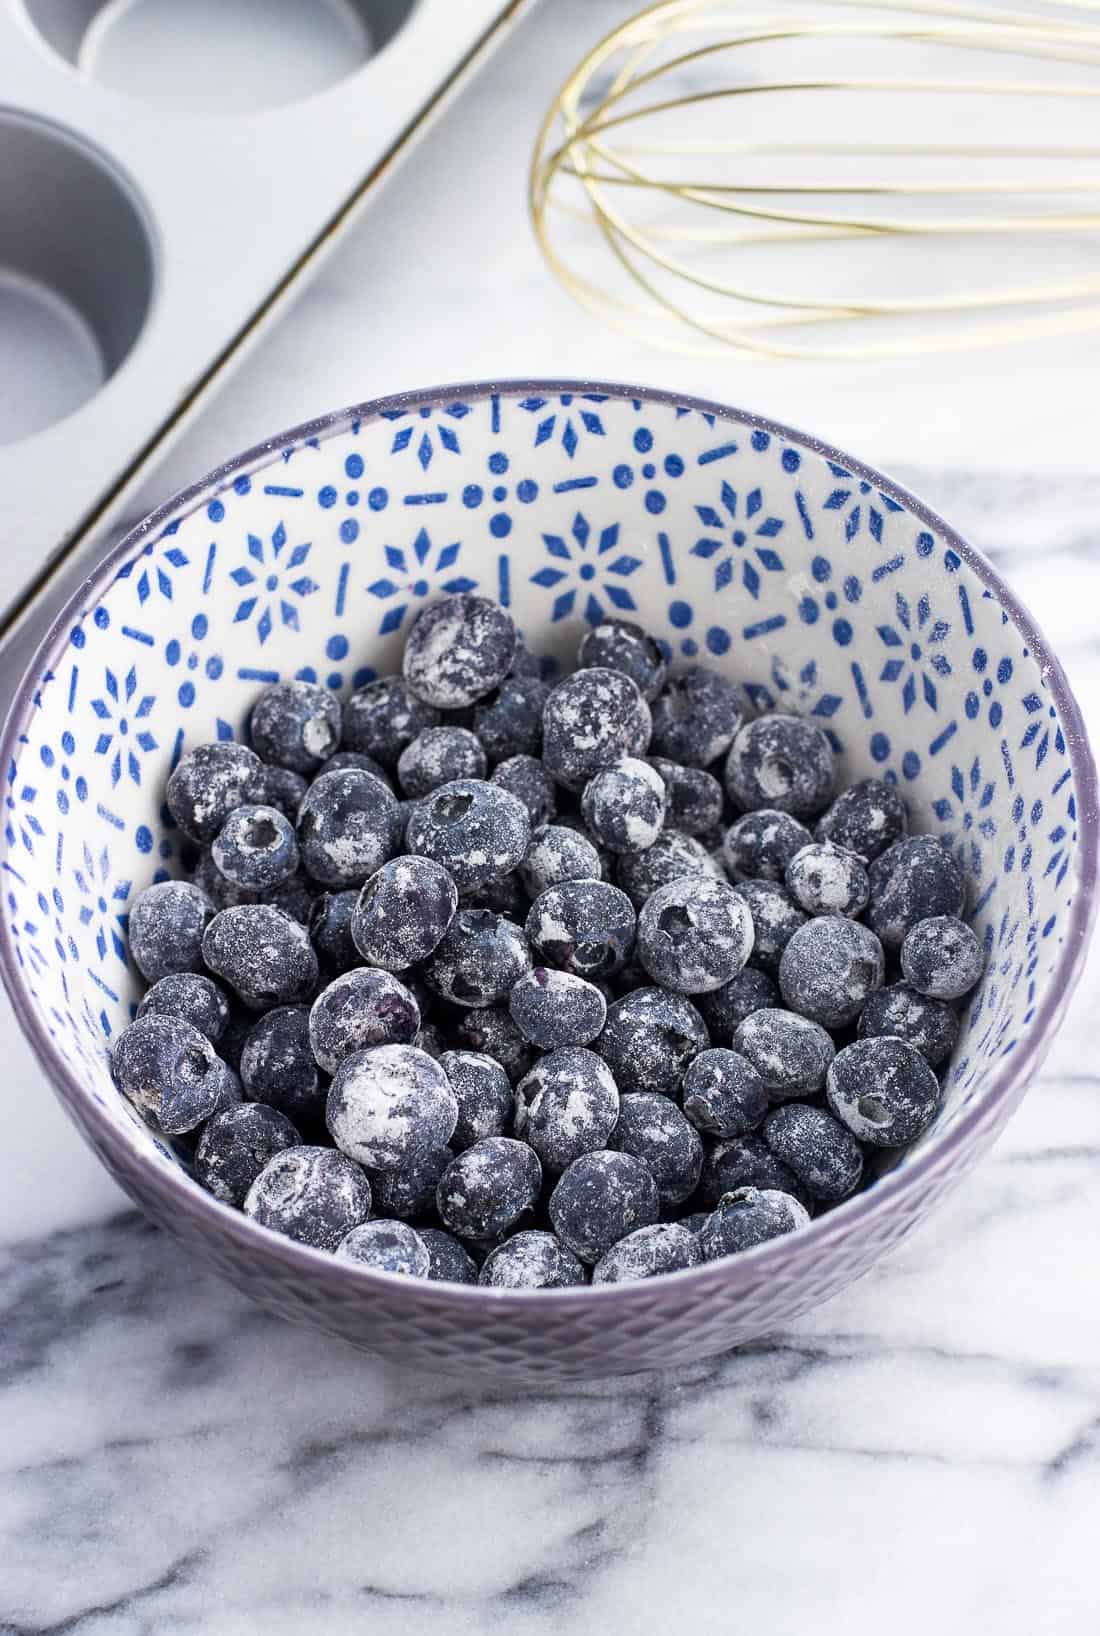 A ceramic cereal bowl filled with flour-dusted blueberries next to a muffin pan and a whisk